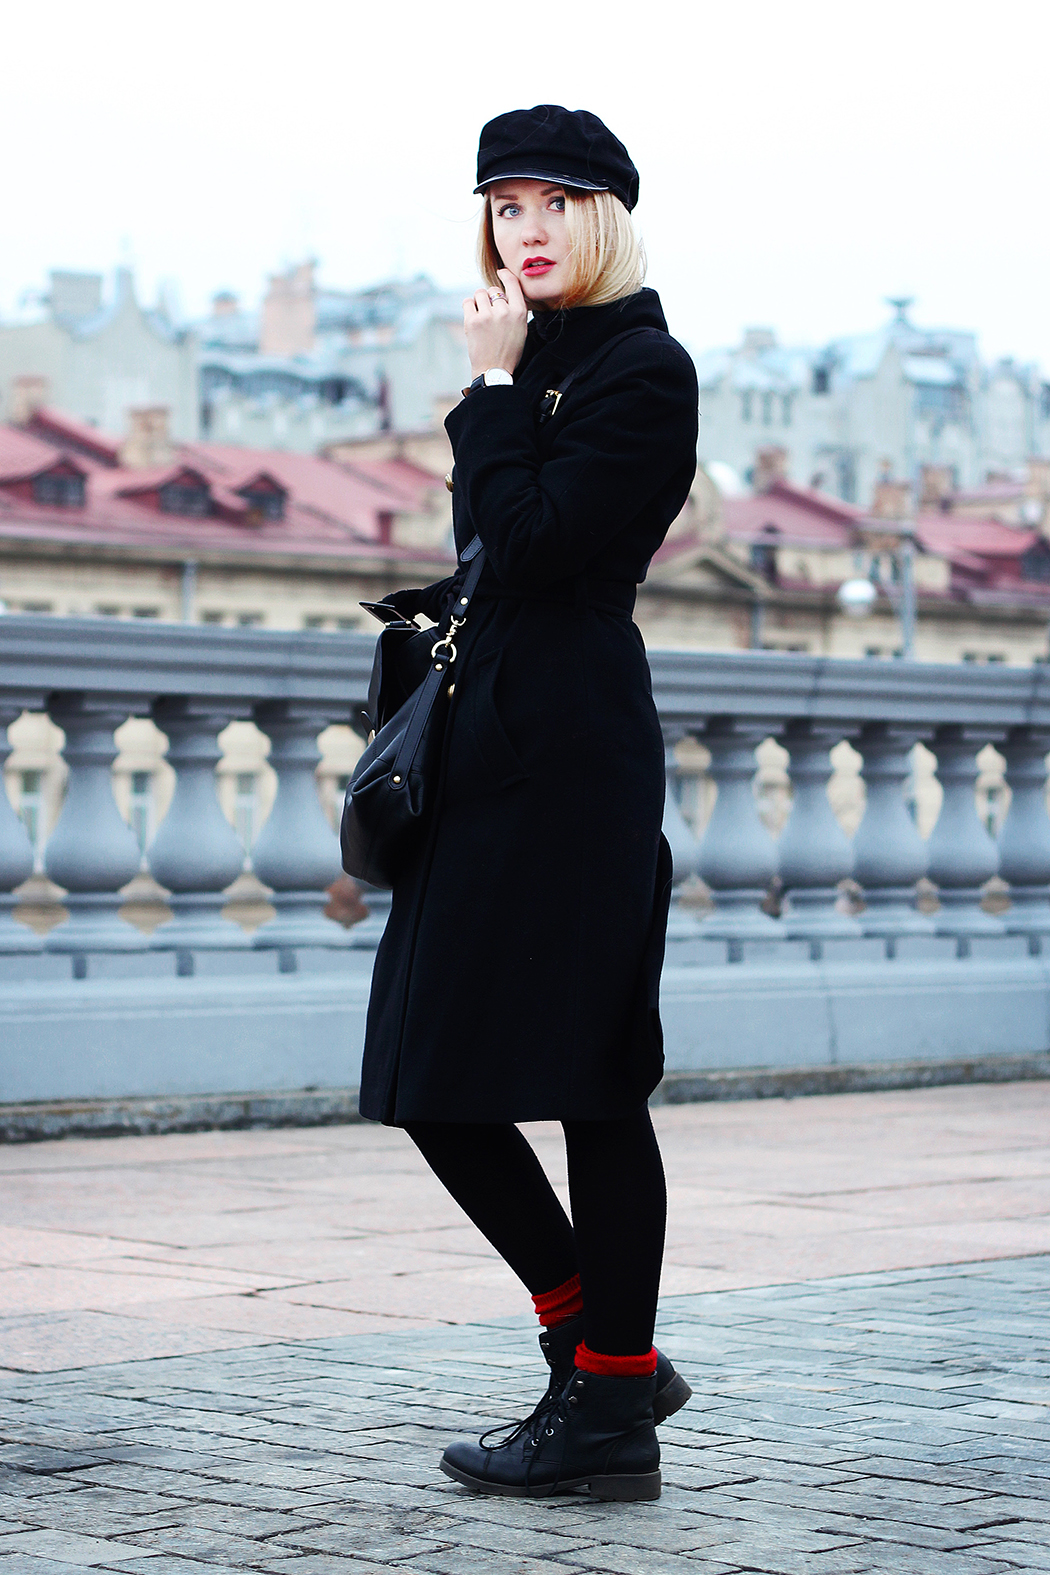 Ines De La Fressange for UNIQLO, inspiration, streetstyle, autumn outfit, autumn streetstyle, moscow fashion week, annamidday, top fashion blogger, top russian fashion blogger, фэшн блогер, русский блогер, известный блогер, топовый блогер, russian bloger, top russian blogger, streetfashion, russian fashion blogger, blogger, fashion, style, fashionista, модный блогер, российский блогер, ТОП блогер, ootd, lookoftheday, look, популярный блогер, российский модный блогер, russian girl, с чем носить черное пальто,  girly, how to wear hat, military coat, french style, стиль француженок, французский стиль, стиль милитари, socks in boots, с чем носить кепи, красивая девушка, русская девушка, fashion week, Ines De La Fressange, Инес Де Ля Фрессанж